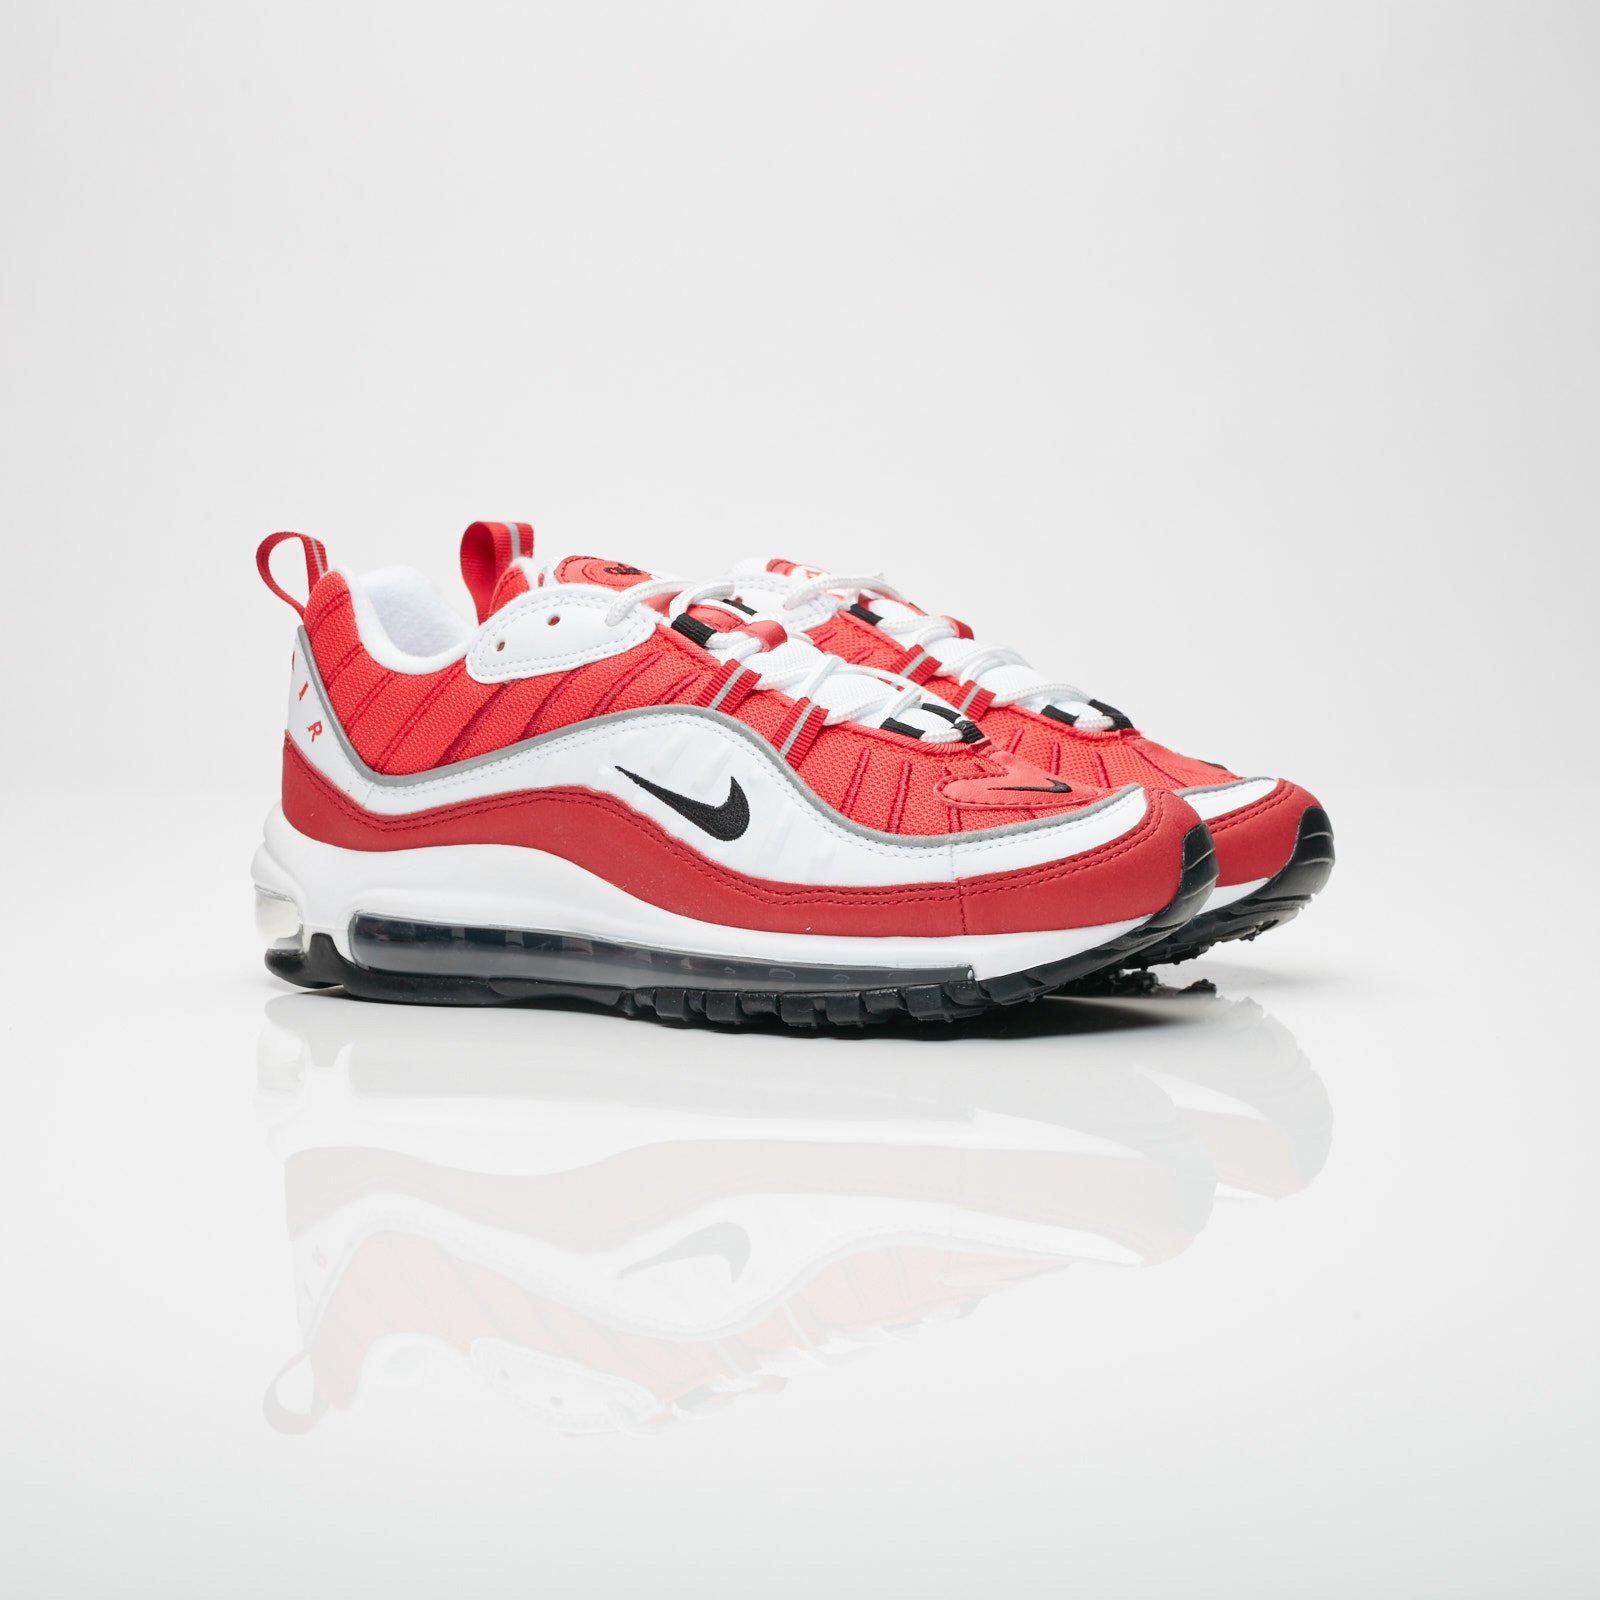 brand new f5dec bf494 Nike Wmns Air Max 98 - Ah6799-101 - Sneakersnstuff | sneakers ...